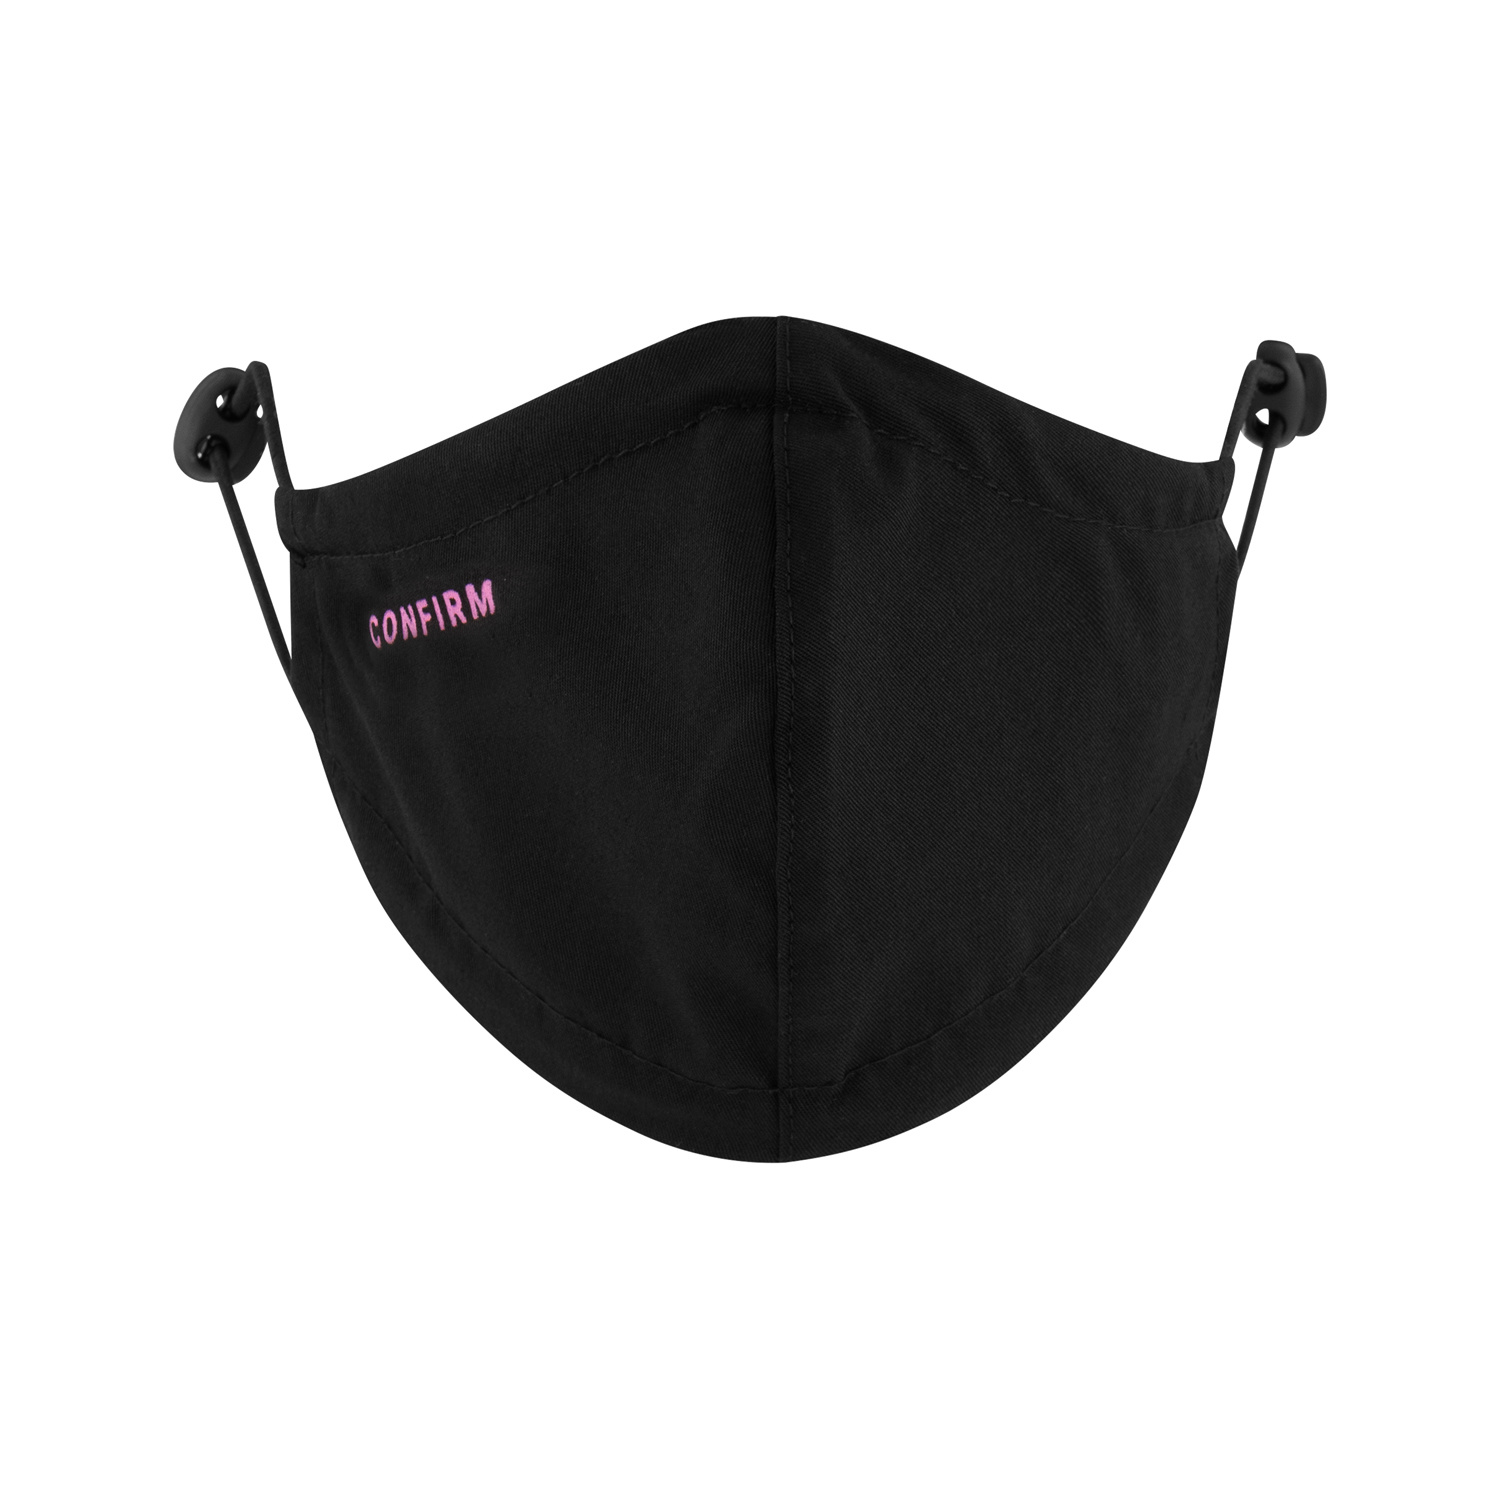 Confirm mask 2-pack - black/fuchsia-5